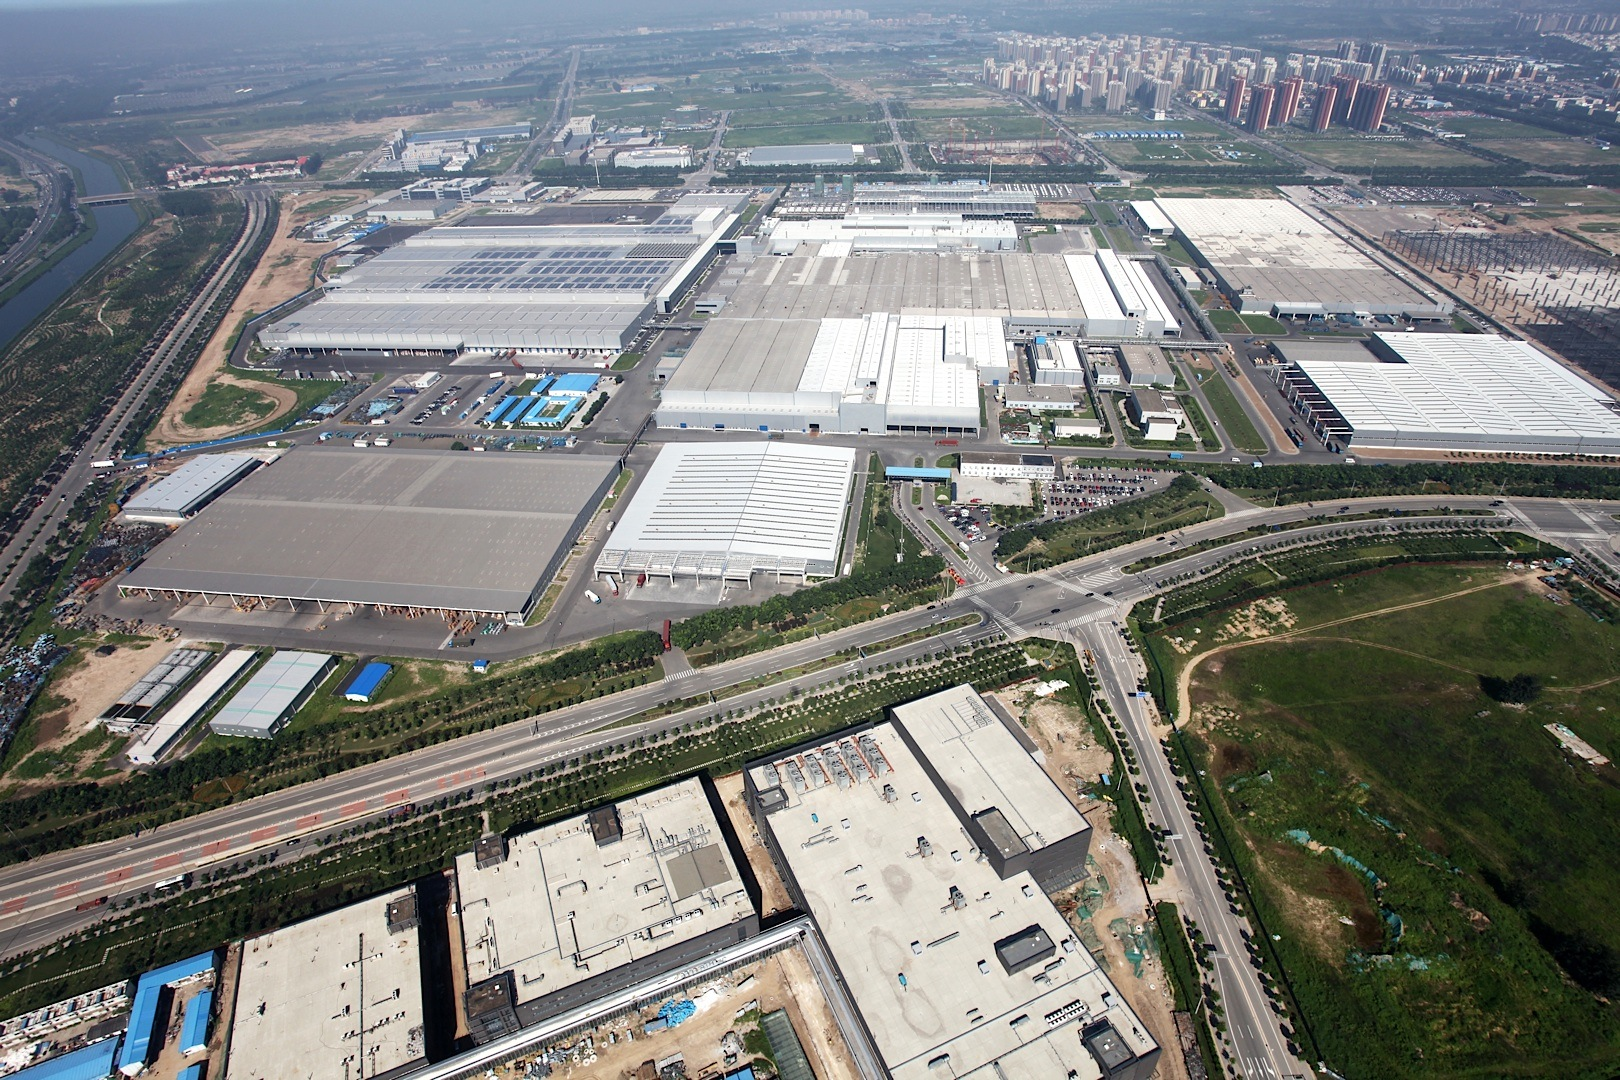 Next milestone for Daimler in China: Mercedes-Benz engine plant at Beijing Benz celebrates grand opening. / Meilenstein für Daimler in China: Mercedes-Benz Motorenwerk in Peking offiziell eröffnet.